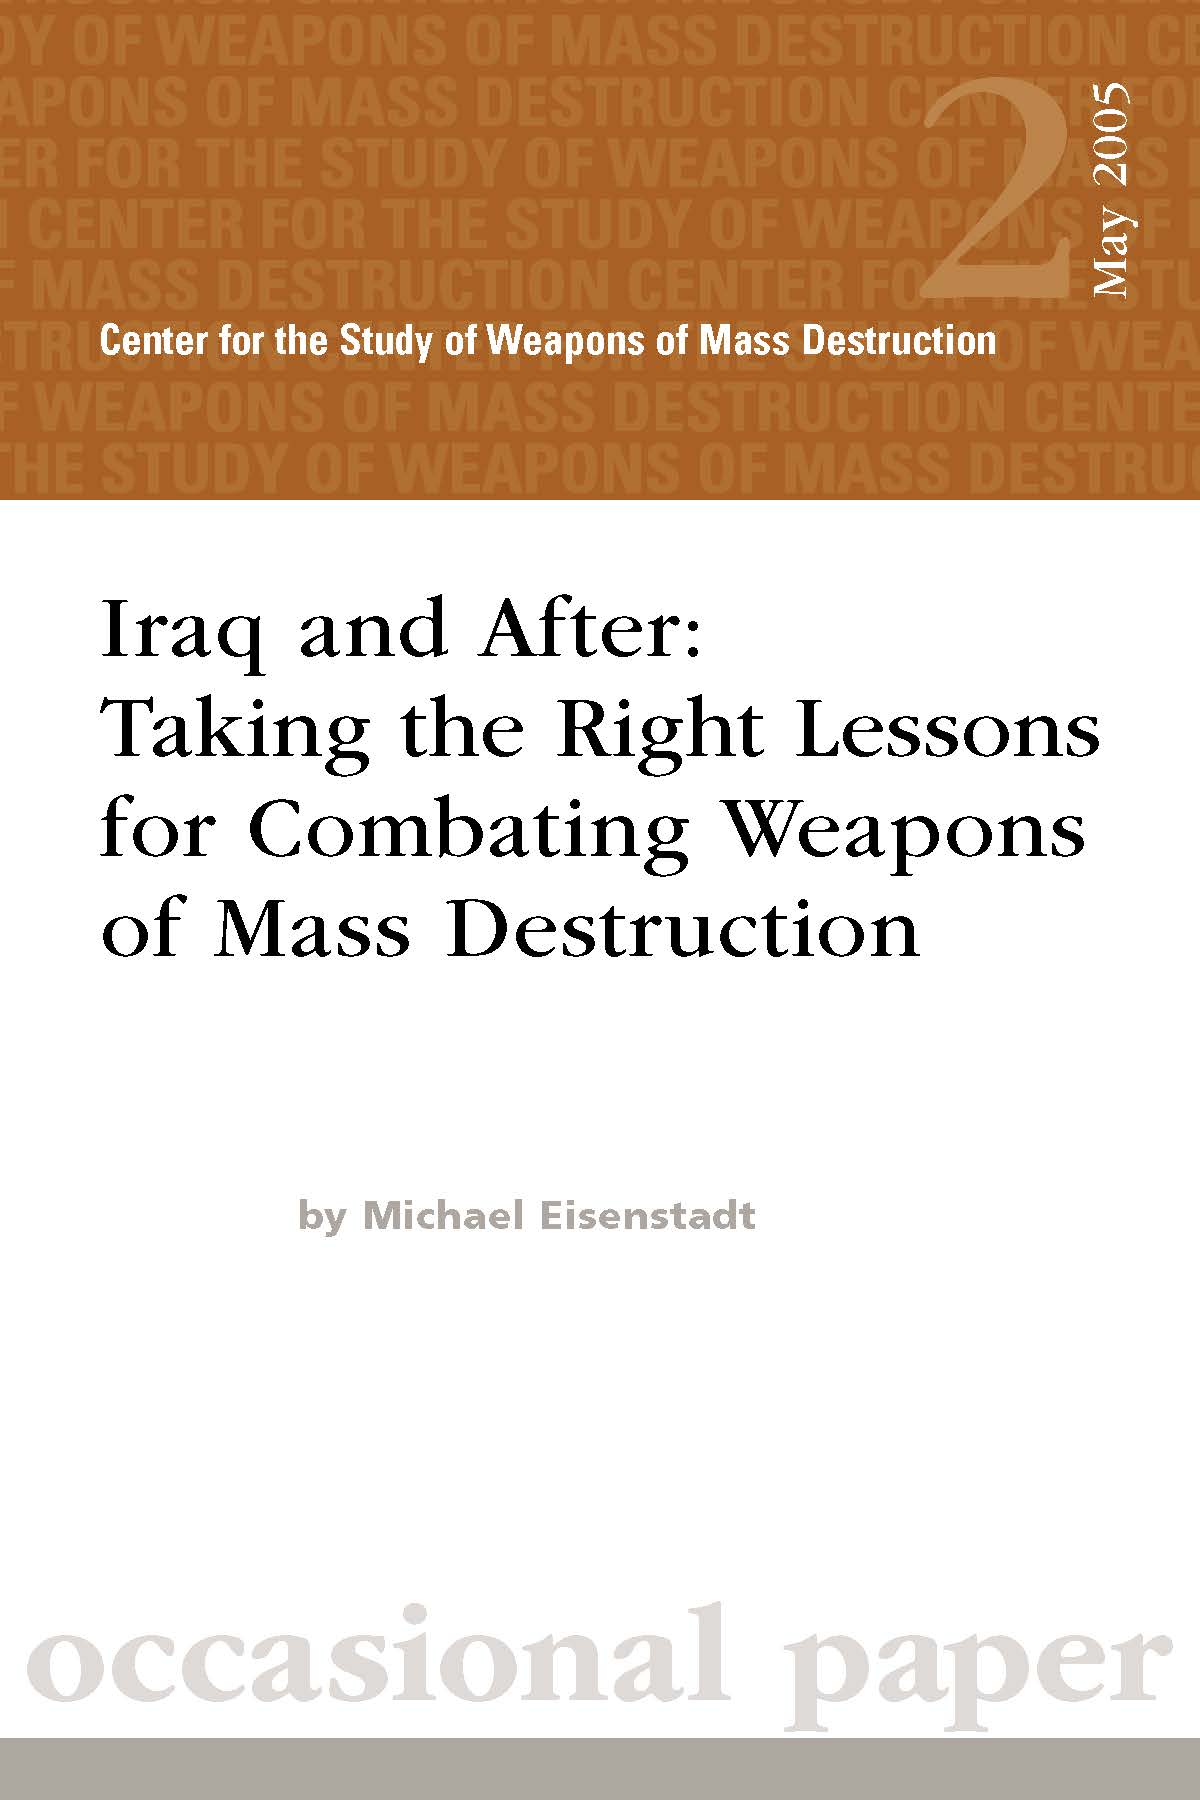 Custom Weapons of Mass Destruction Essay